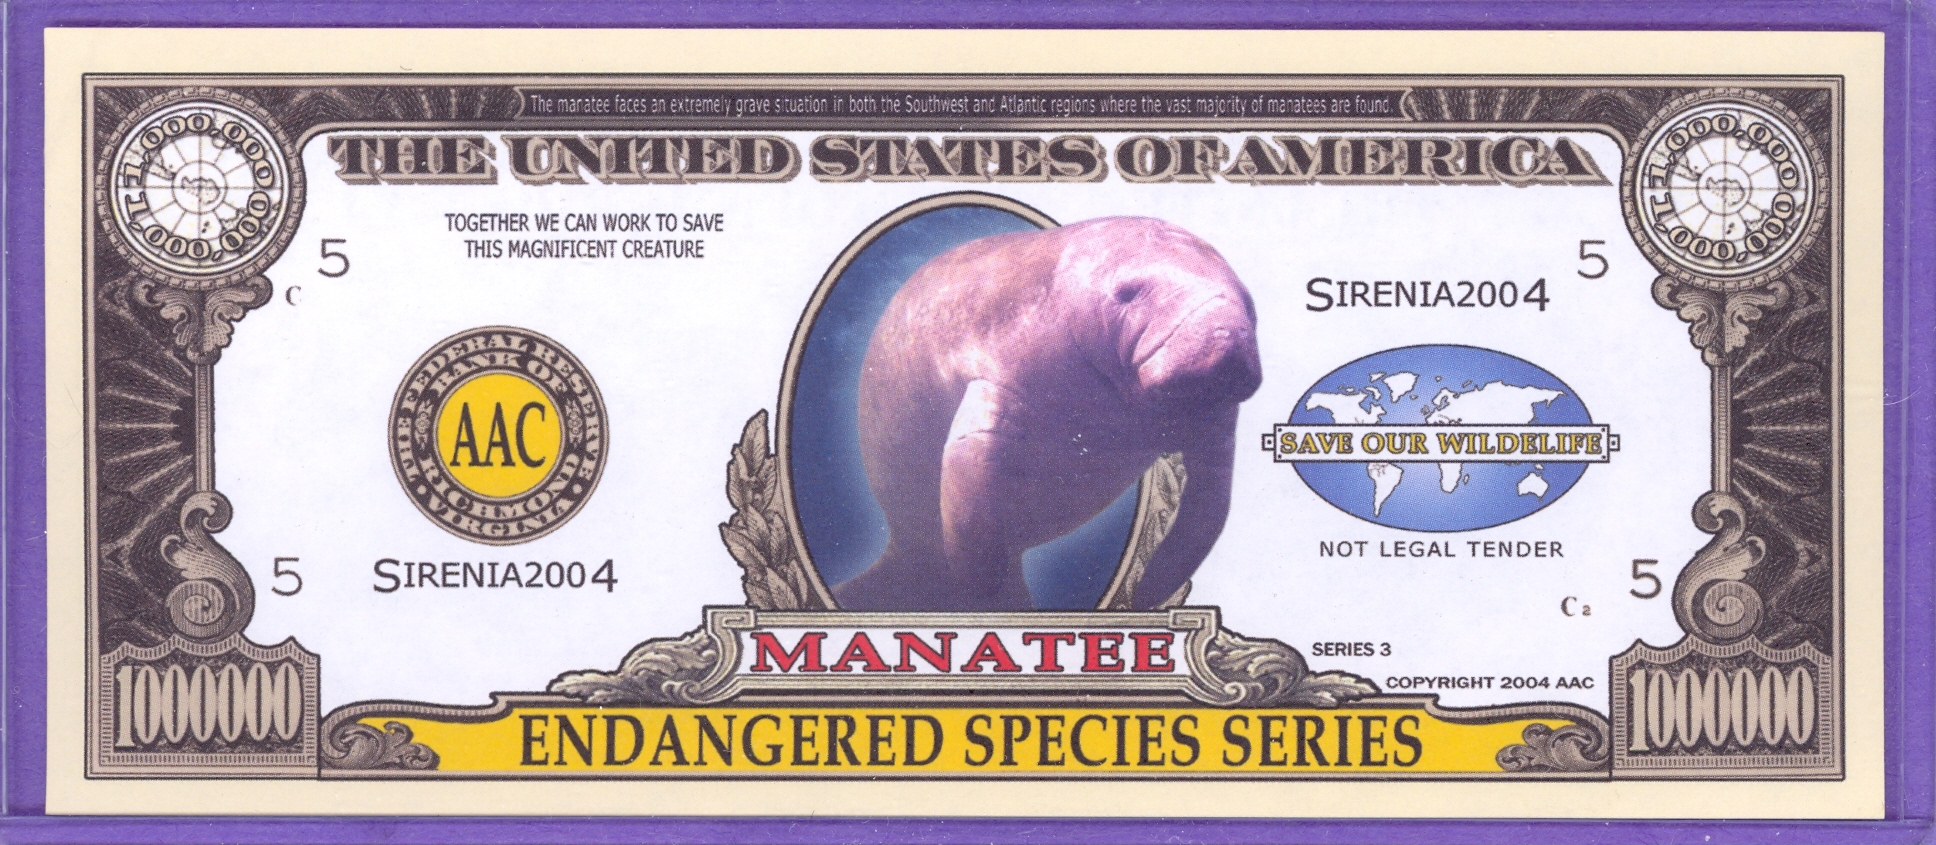 Manatee $1,000,000 Novelty Note - Endangered Species